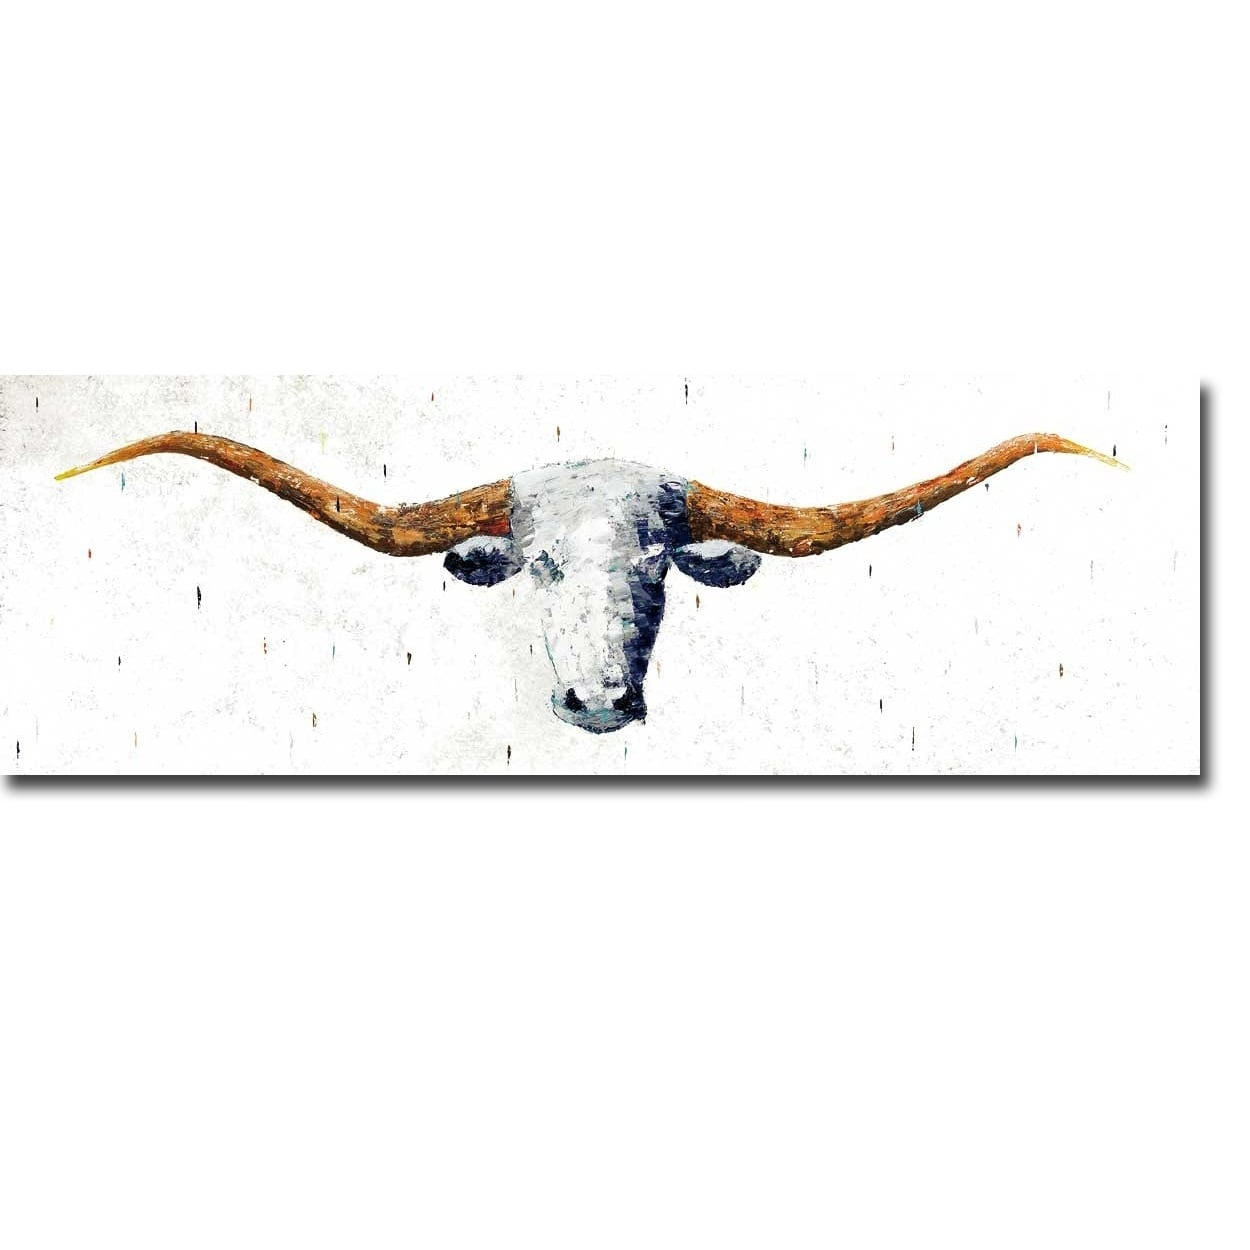 Longhorn by marvin pelkey gallery wrapped canvas giclee art